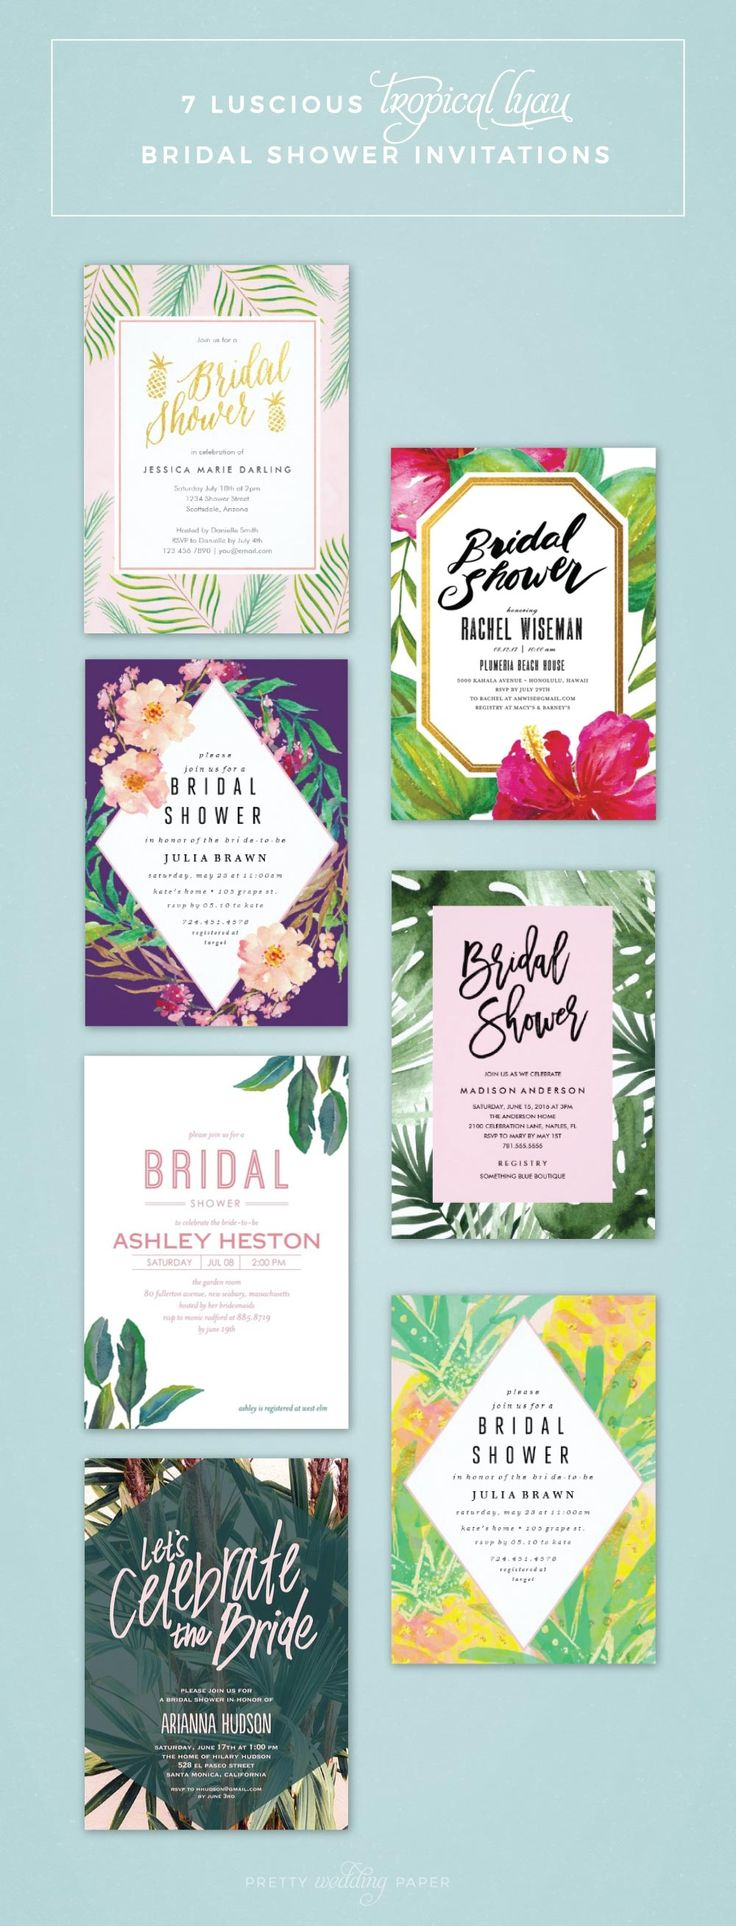 Best 25 tropical bridal showers ideas on pinterest tropical 7 luscious tropical bridal shower invitations lets luau monicamarmolfo Images